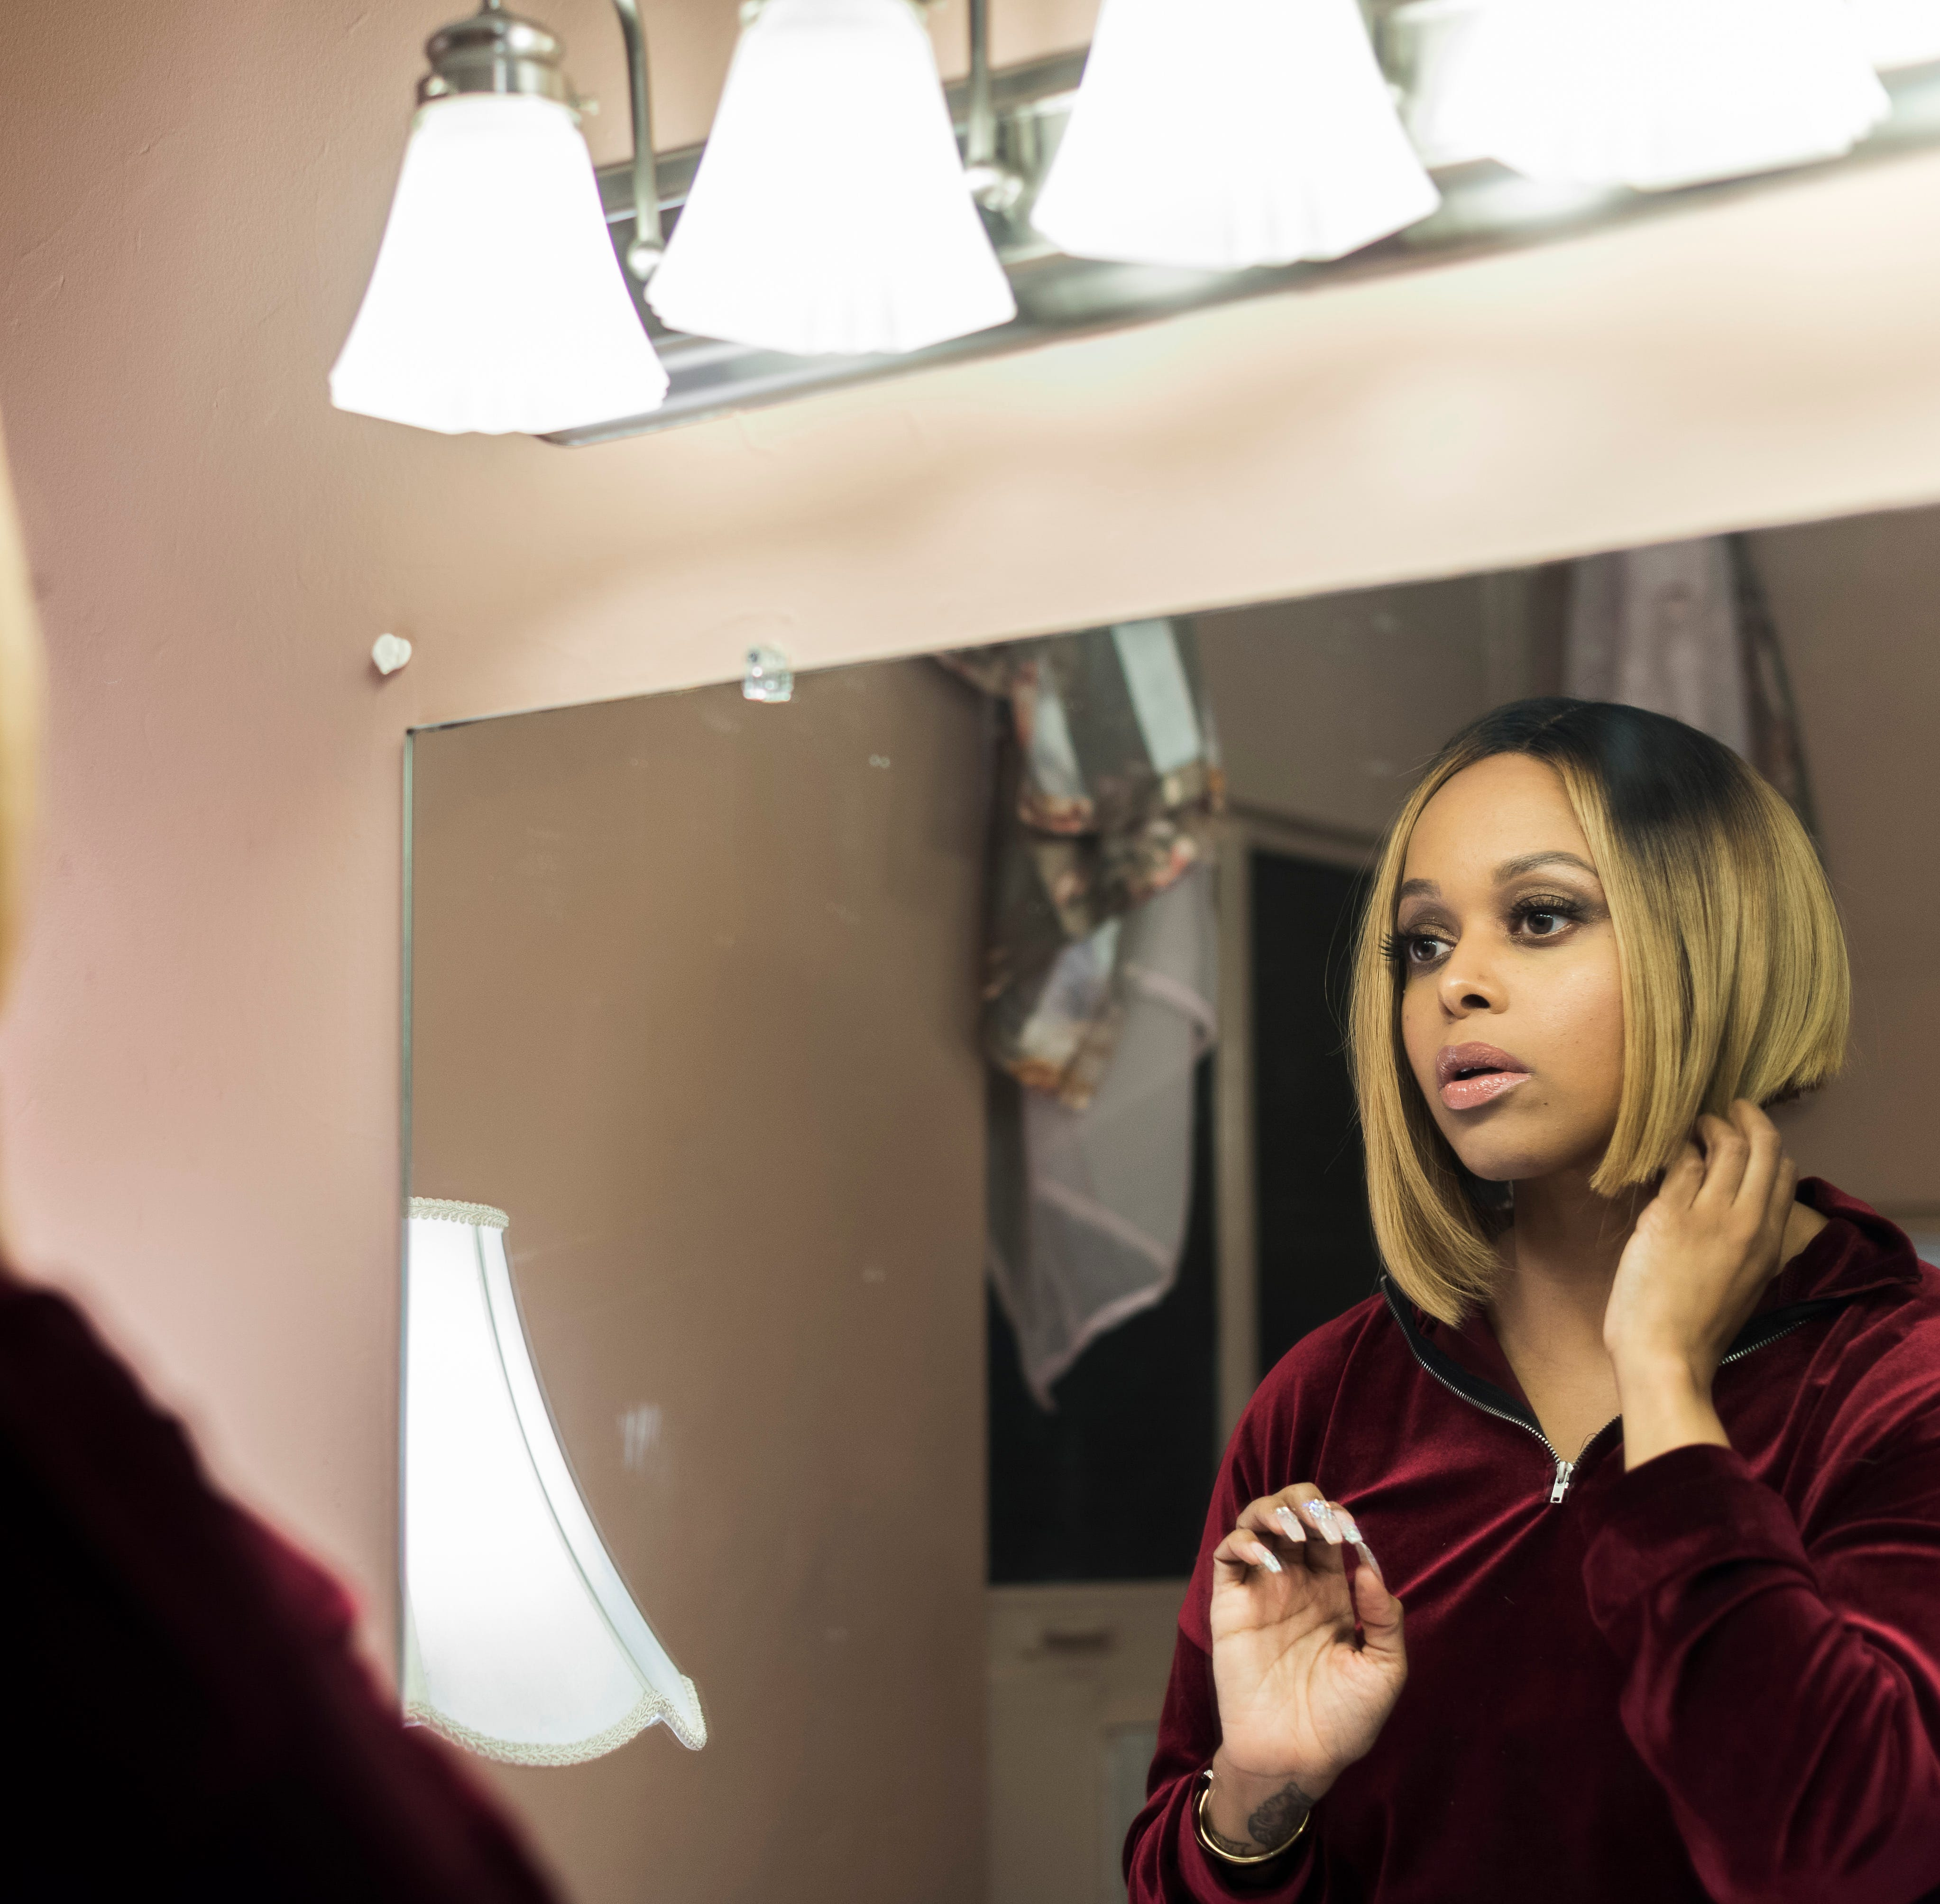 A black R&B artist hoped singing for Trump would build 'a bridge.' It derailed her career instead.